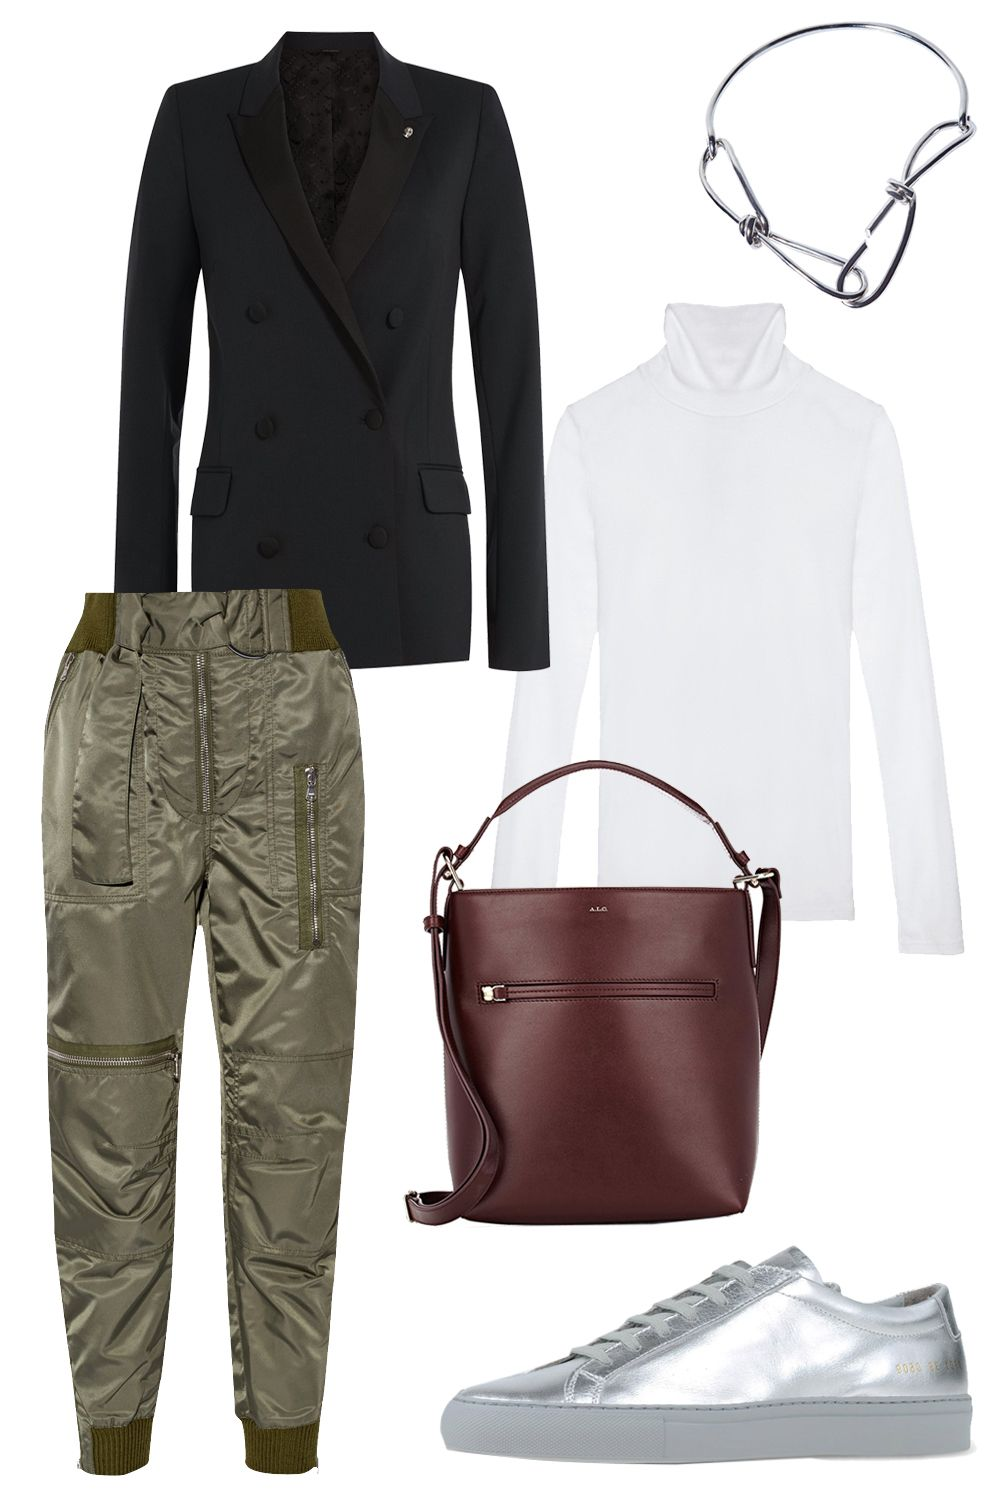 """<p>3.1 Phillip Lim Belted Shell Tapered Flight Pants, $494; <a href=""""http://rstyle.me/n/bdupuebc6jf"""">net-a-porter.com</a><br></p><p>Zadig & Voltaire Blazer, $565; <a href=""""http://rstyle.me/n/bdupqsbc6jf"""">stylebop.com</a></p><p>Cuyana Long Sleeve Turtleneck Tee, $55; <a href=""""http://www.cuyana.com/long-sleeve-turtleneck-tee-black-1705.html"""">cuyana.com</a></p><p>Annelise Michelson Bondage Choker, $814; <a href=""""http://annelisemichelson-eshop.com/?product=dechainee-choker"""">annelisemichelson-eshop.com</a></p><p>A.L.C. Luke Bucket Bag, $595; <a href=""""http://rstyle.me/n/bdupvebc6jf"""">barneys.com</a><br></p><p>Common Projects Achilles Retro Metallic Leather Sneakers, $435; <a href=""""http://rstyle.me/n/bdupxabc6jf"""">net-a-porter.com</a></p>"""